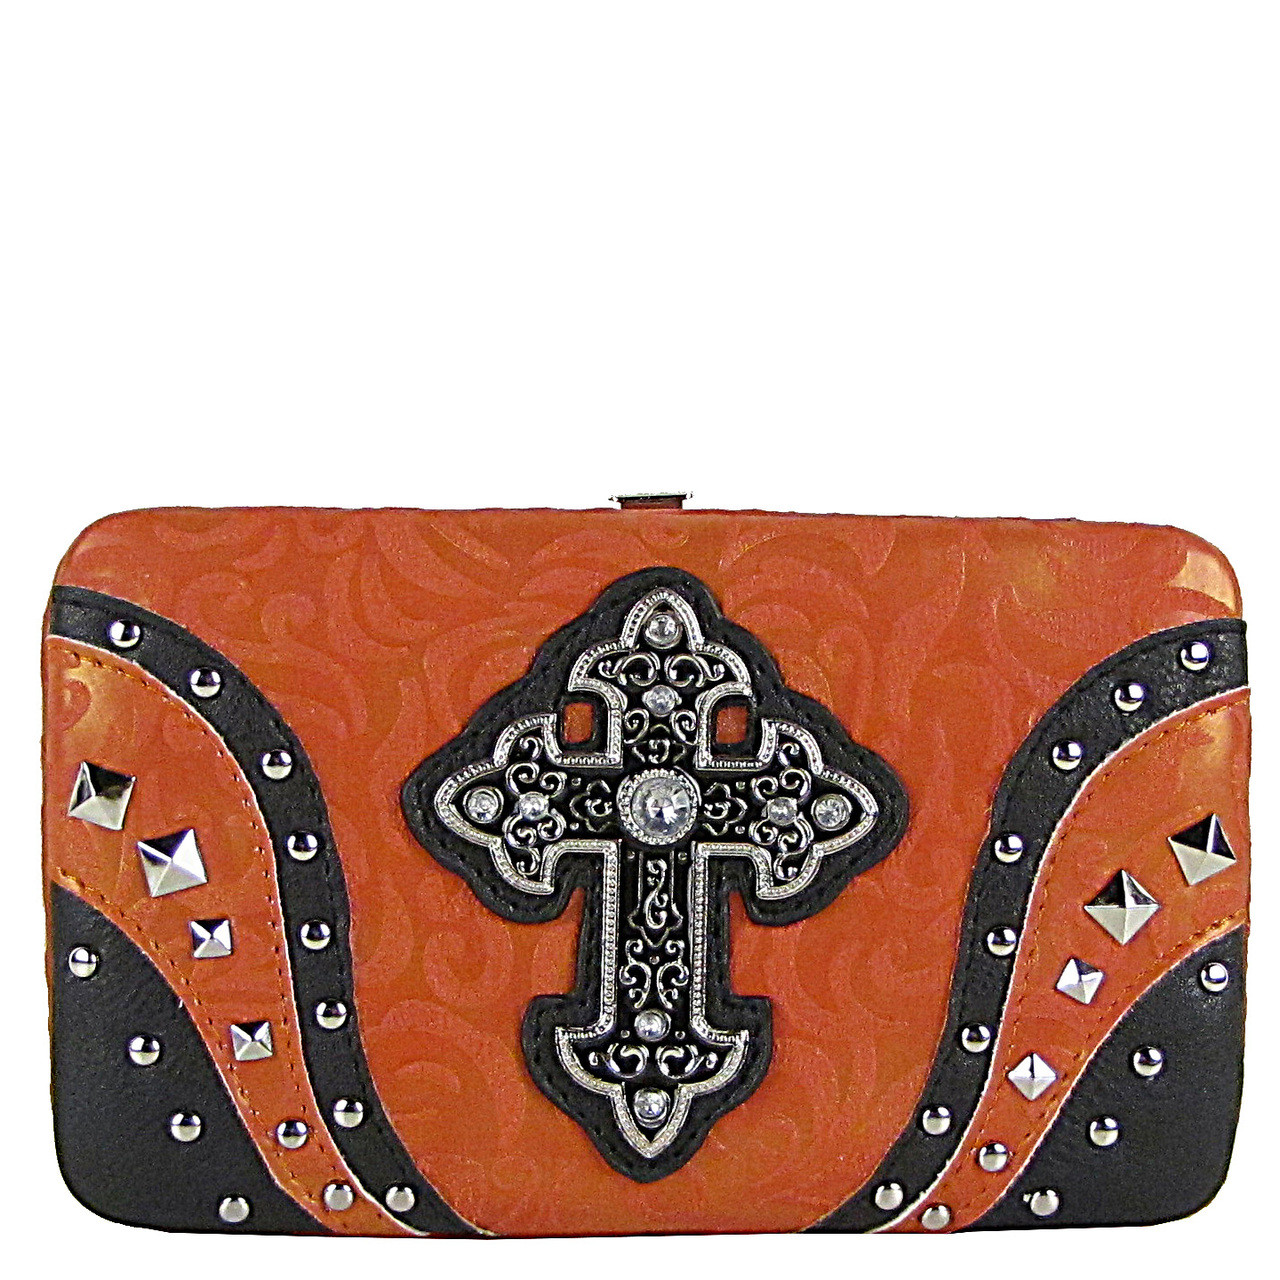 CORAL STUDDED RHINESTONE TOOLED CROSS LOOK FLAT THICK WALLET FW2-04113CRL